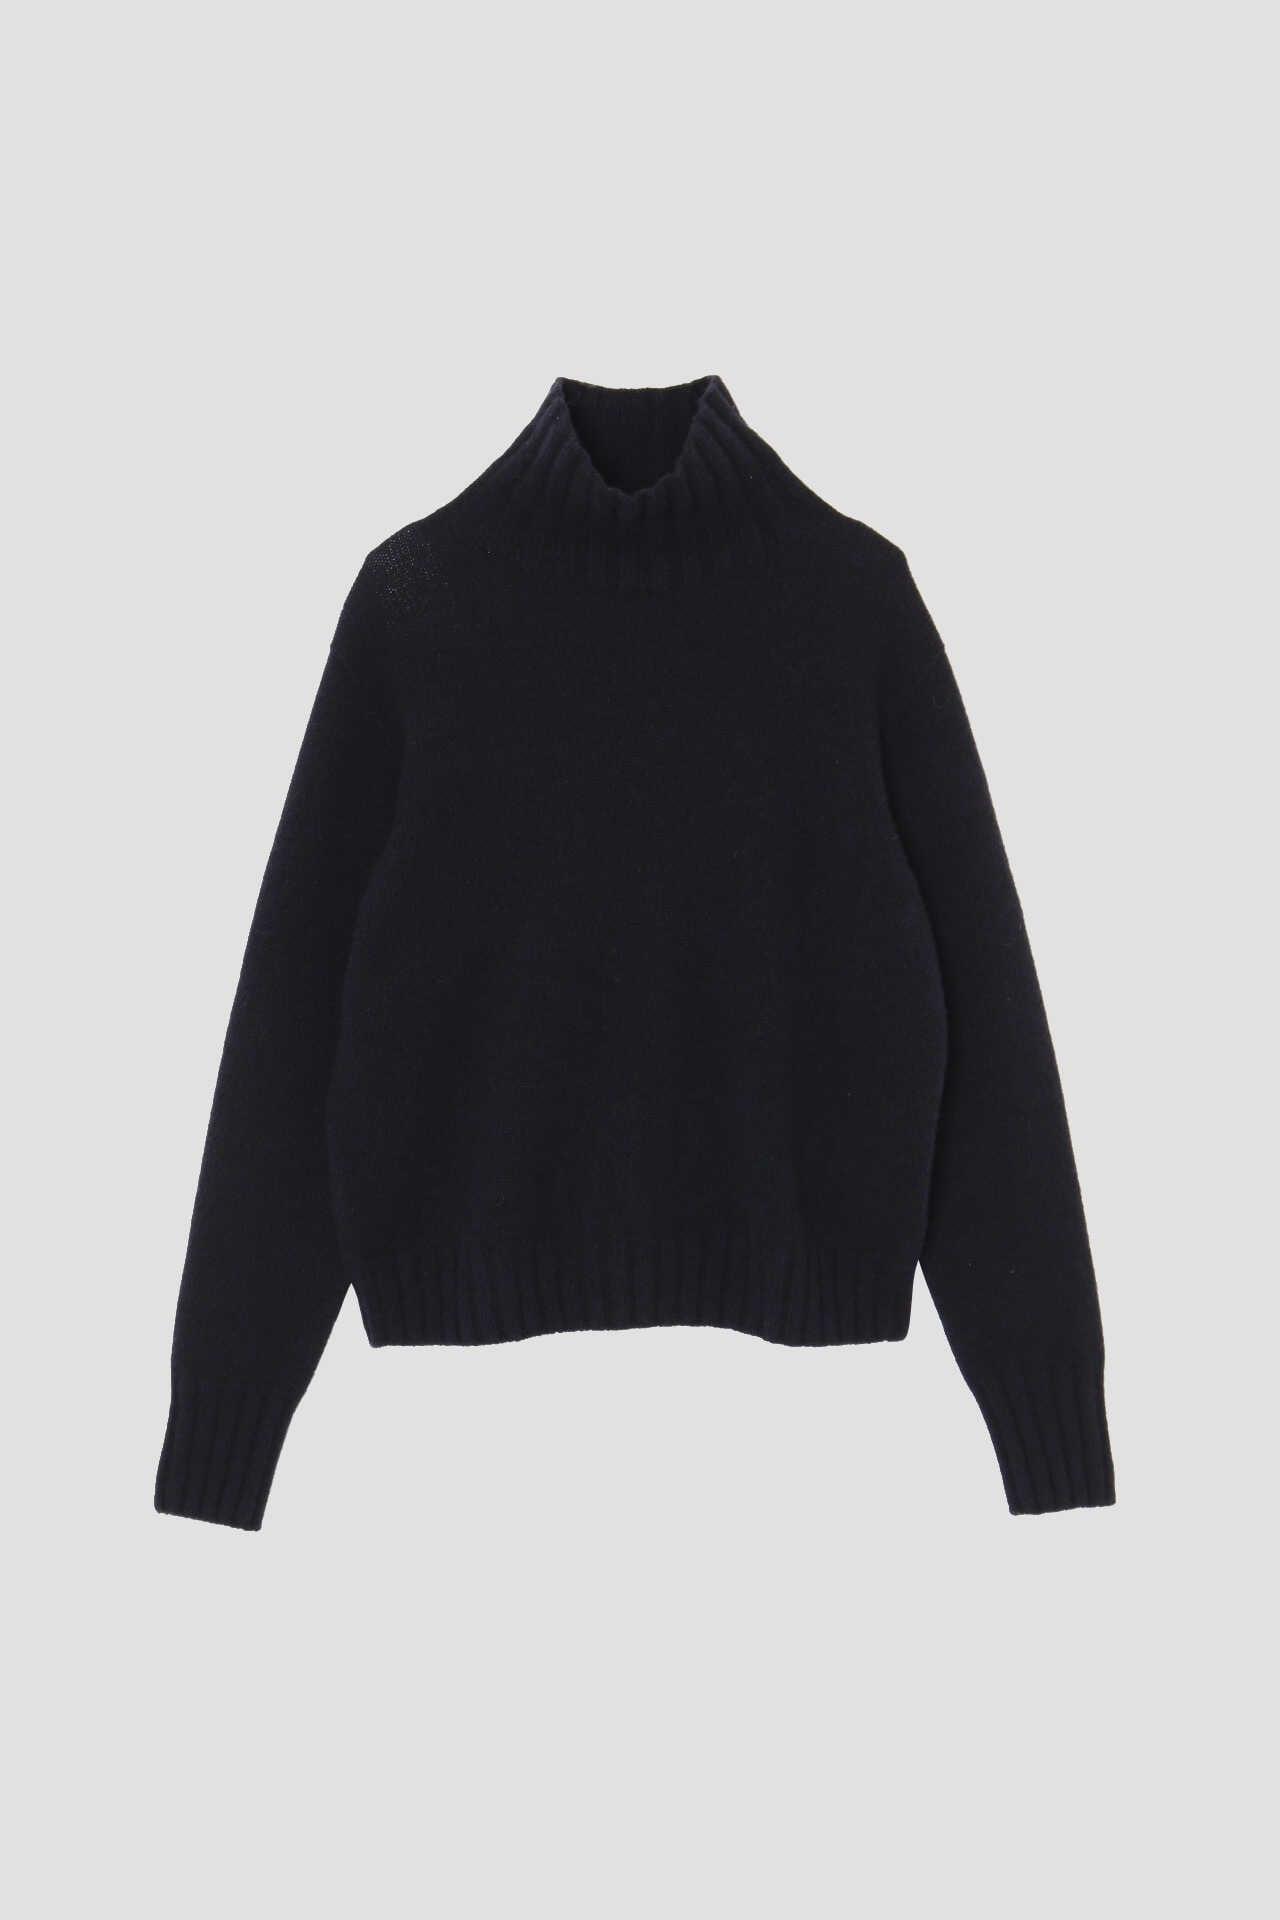 WOOL CASHMERE8